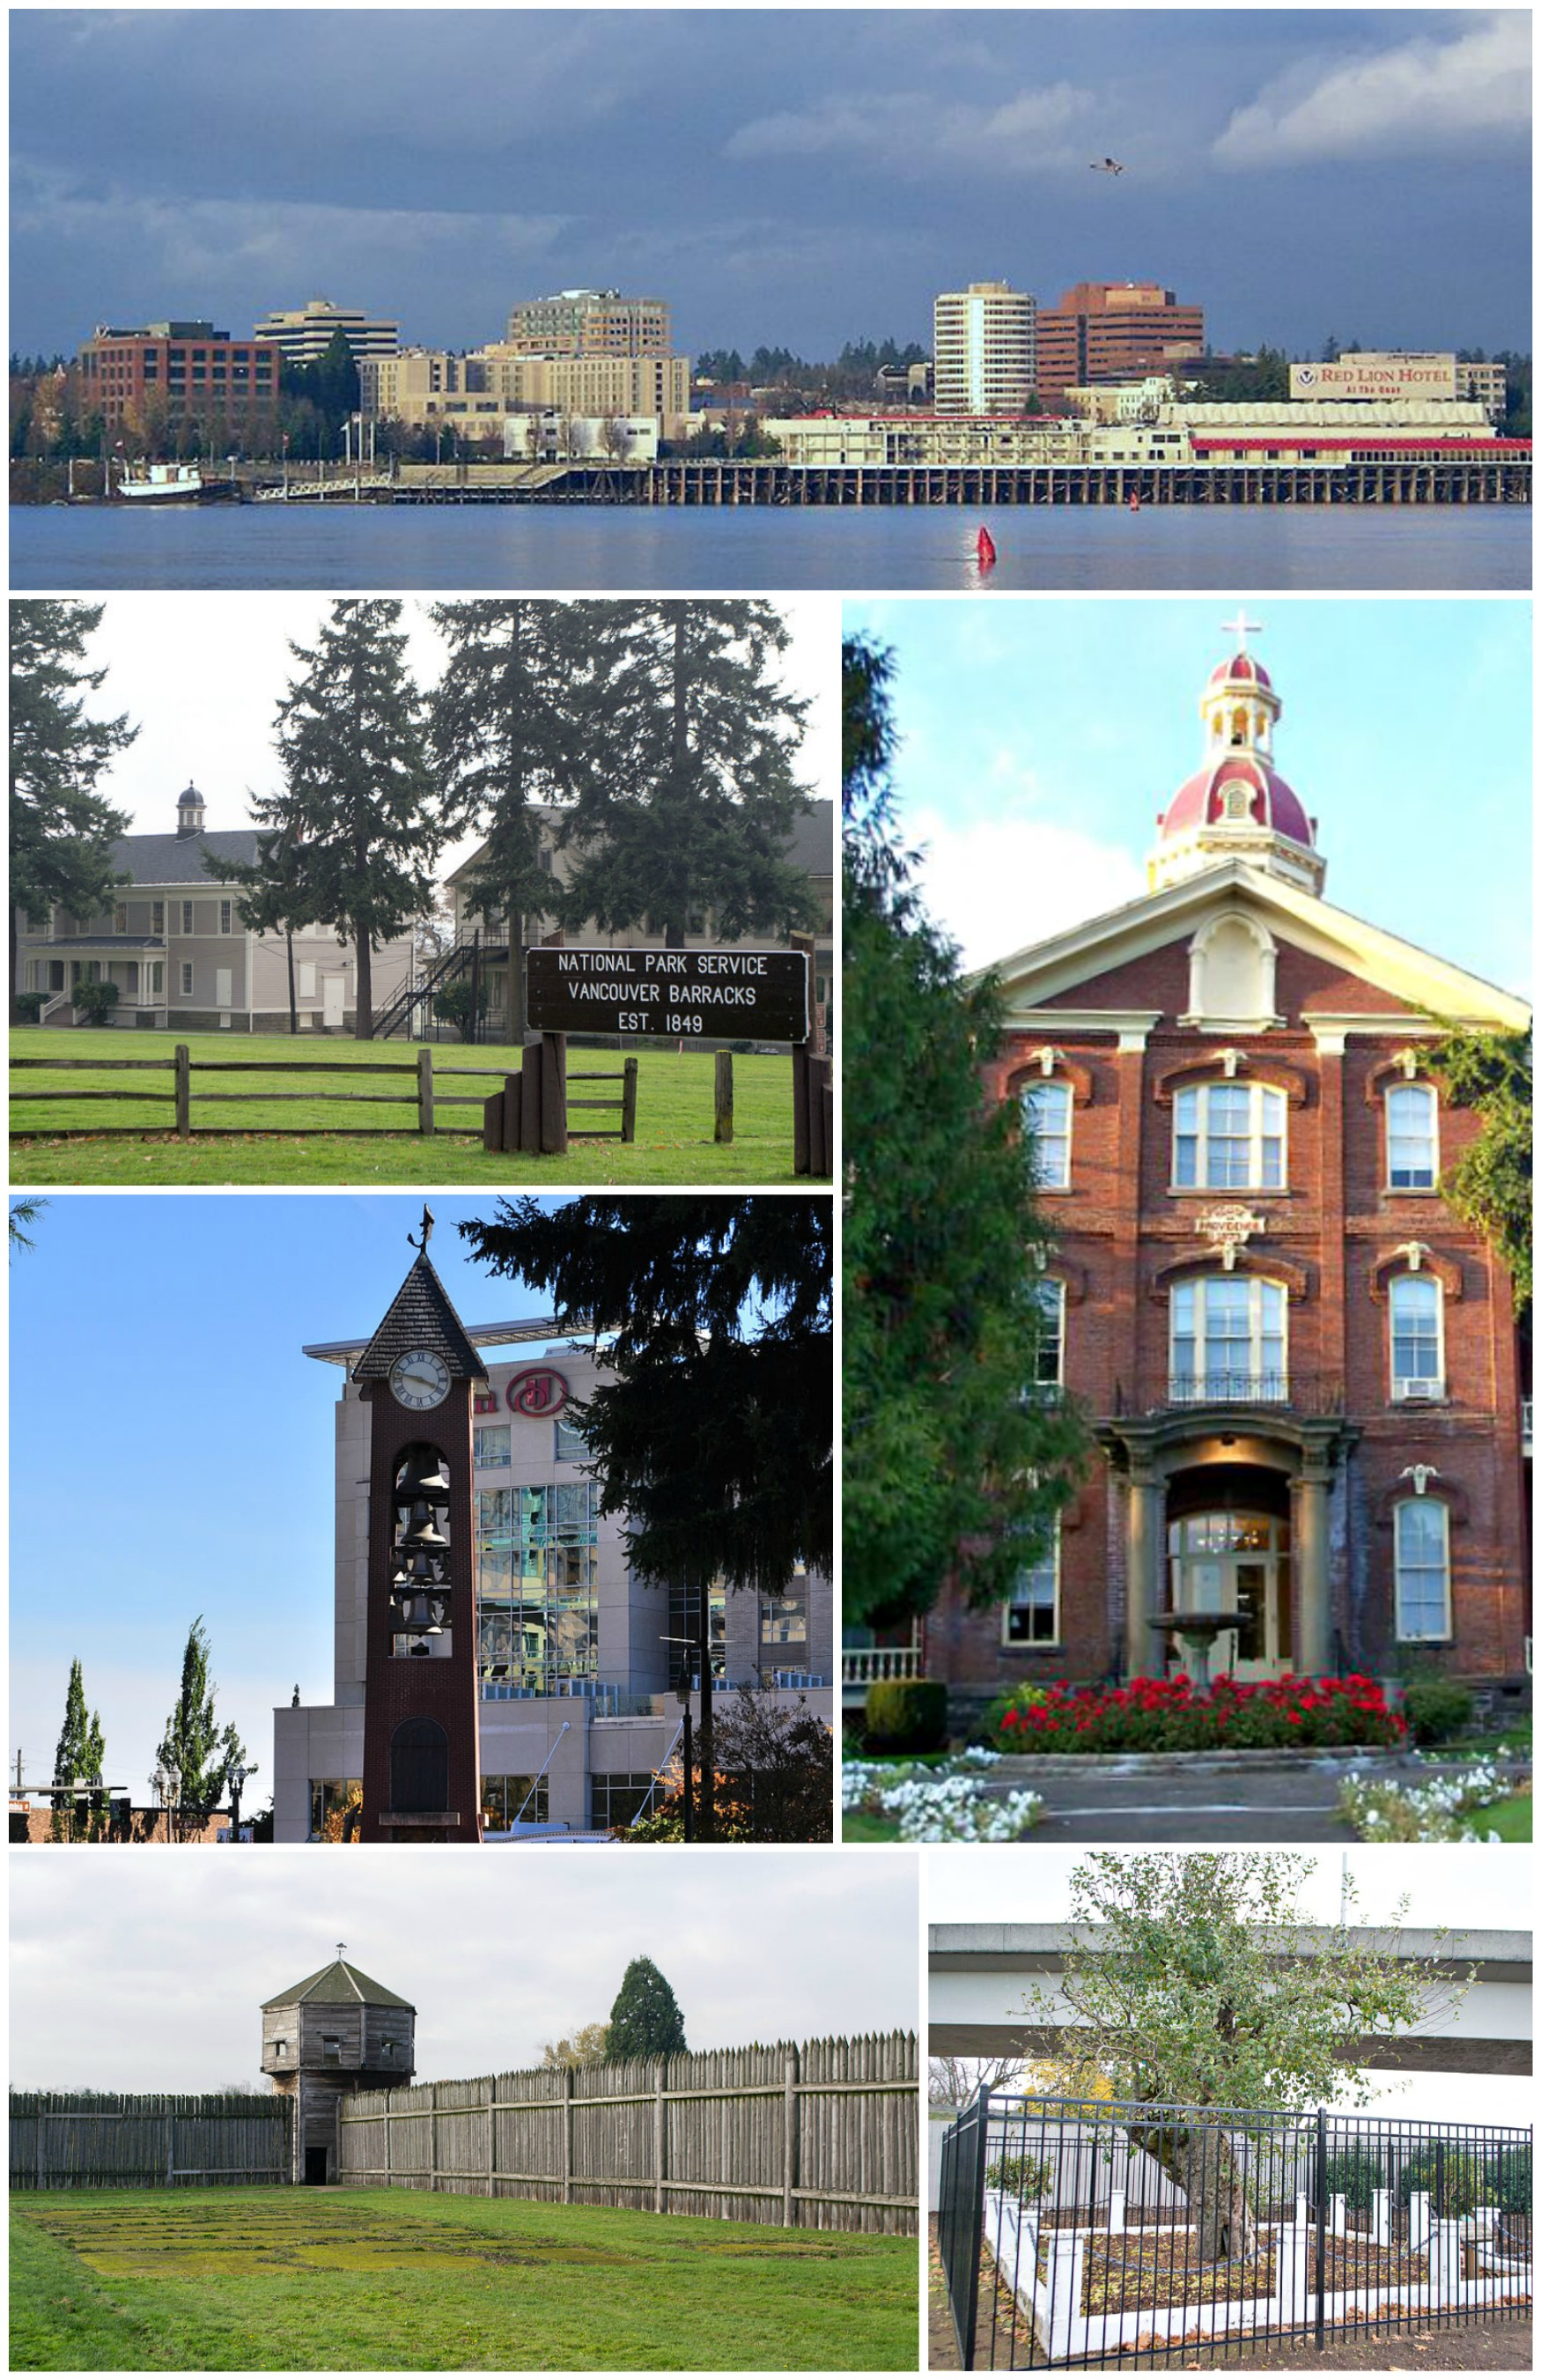 Vancouver Vancouver Washington Wikipedia